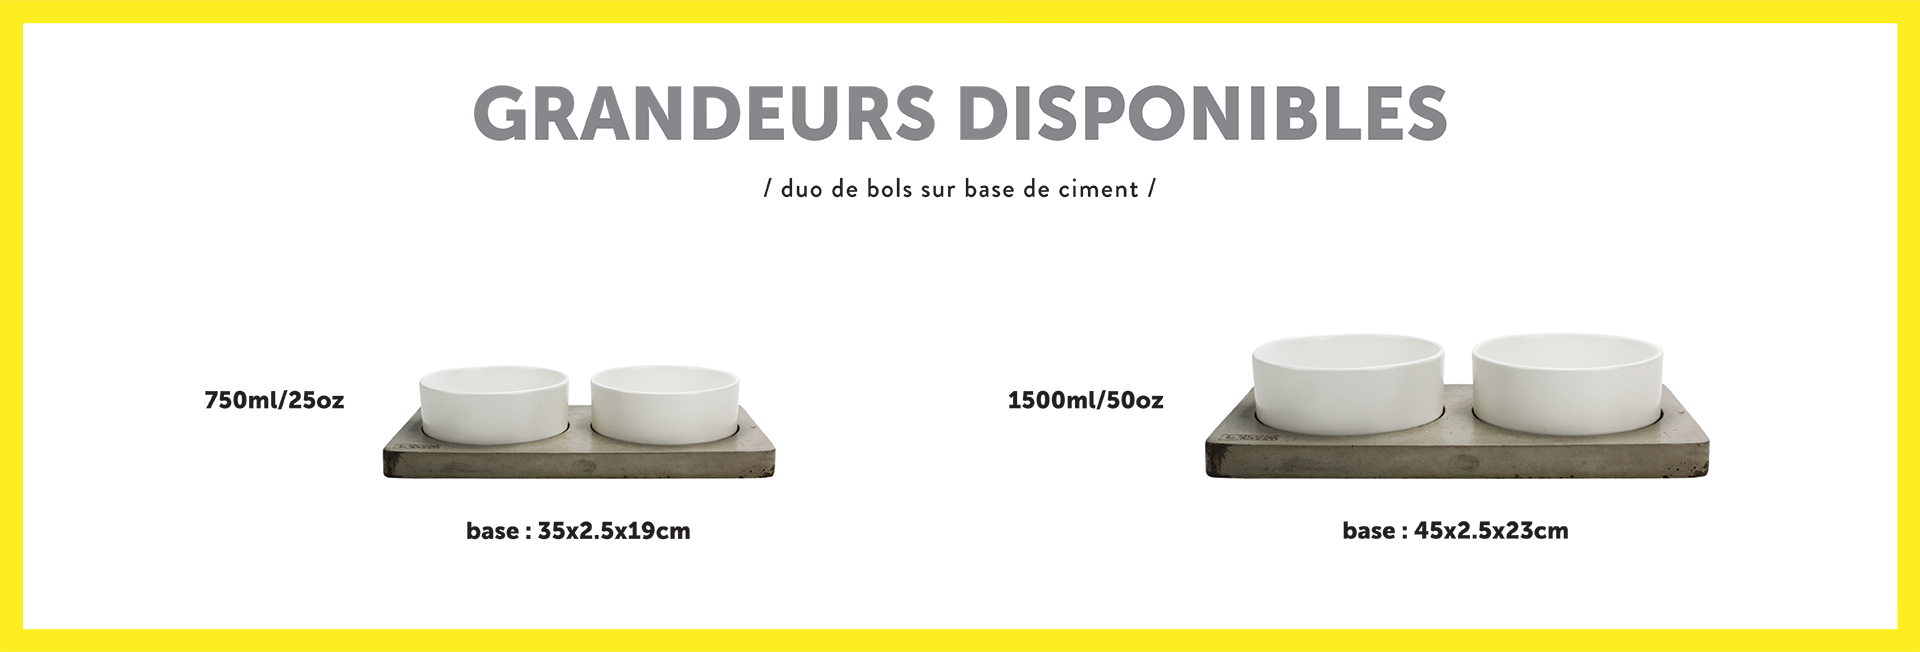 dimensions-bowl-duo-concrete-base-for-dogs-french